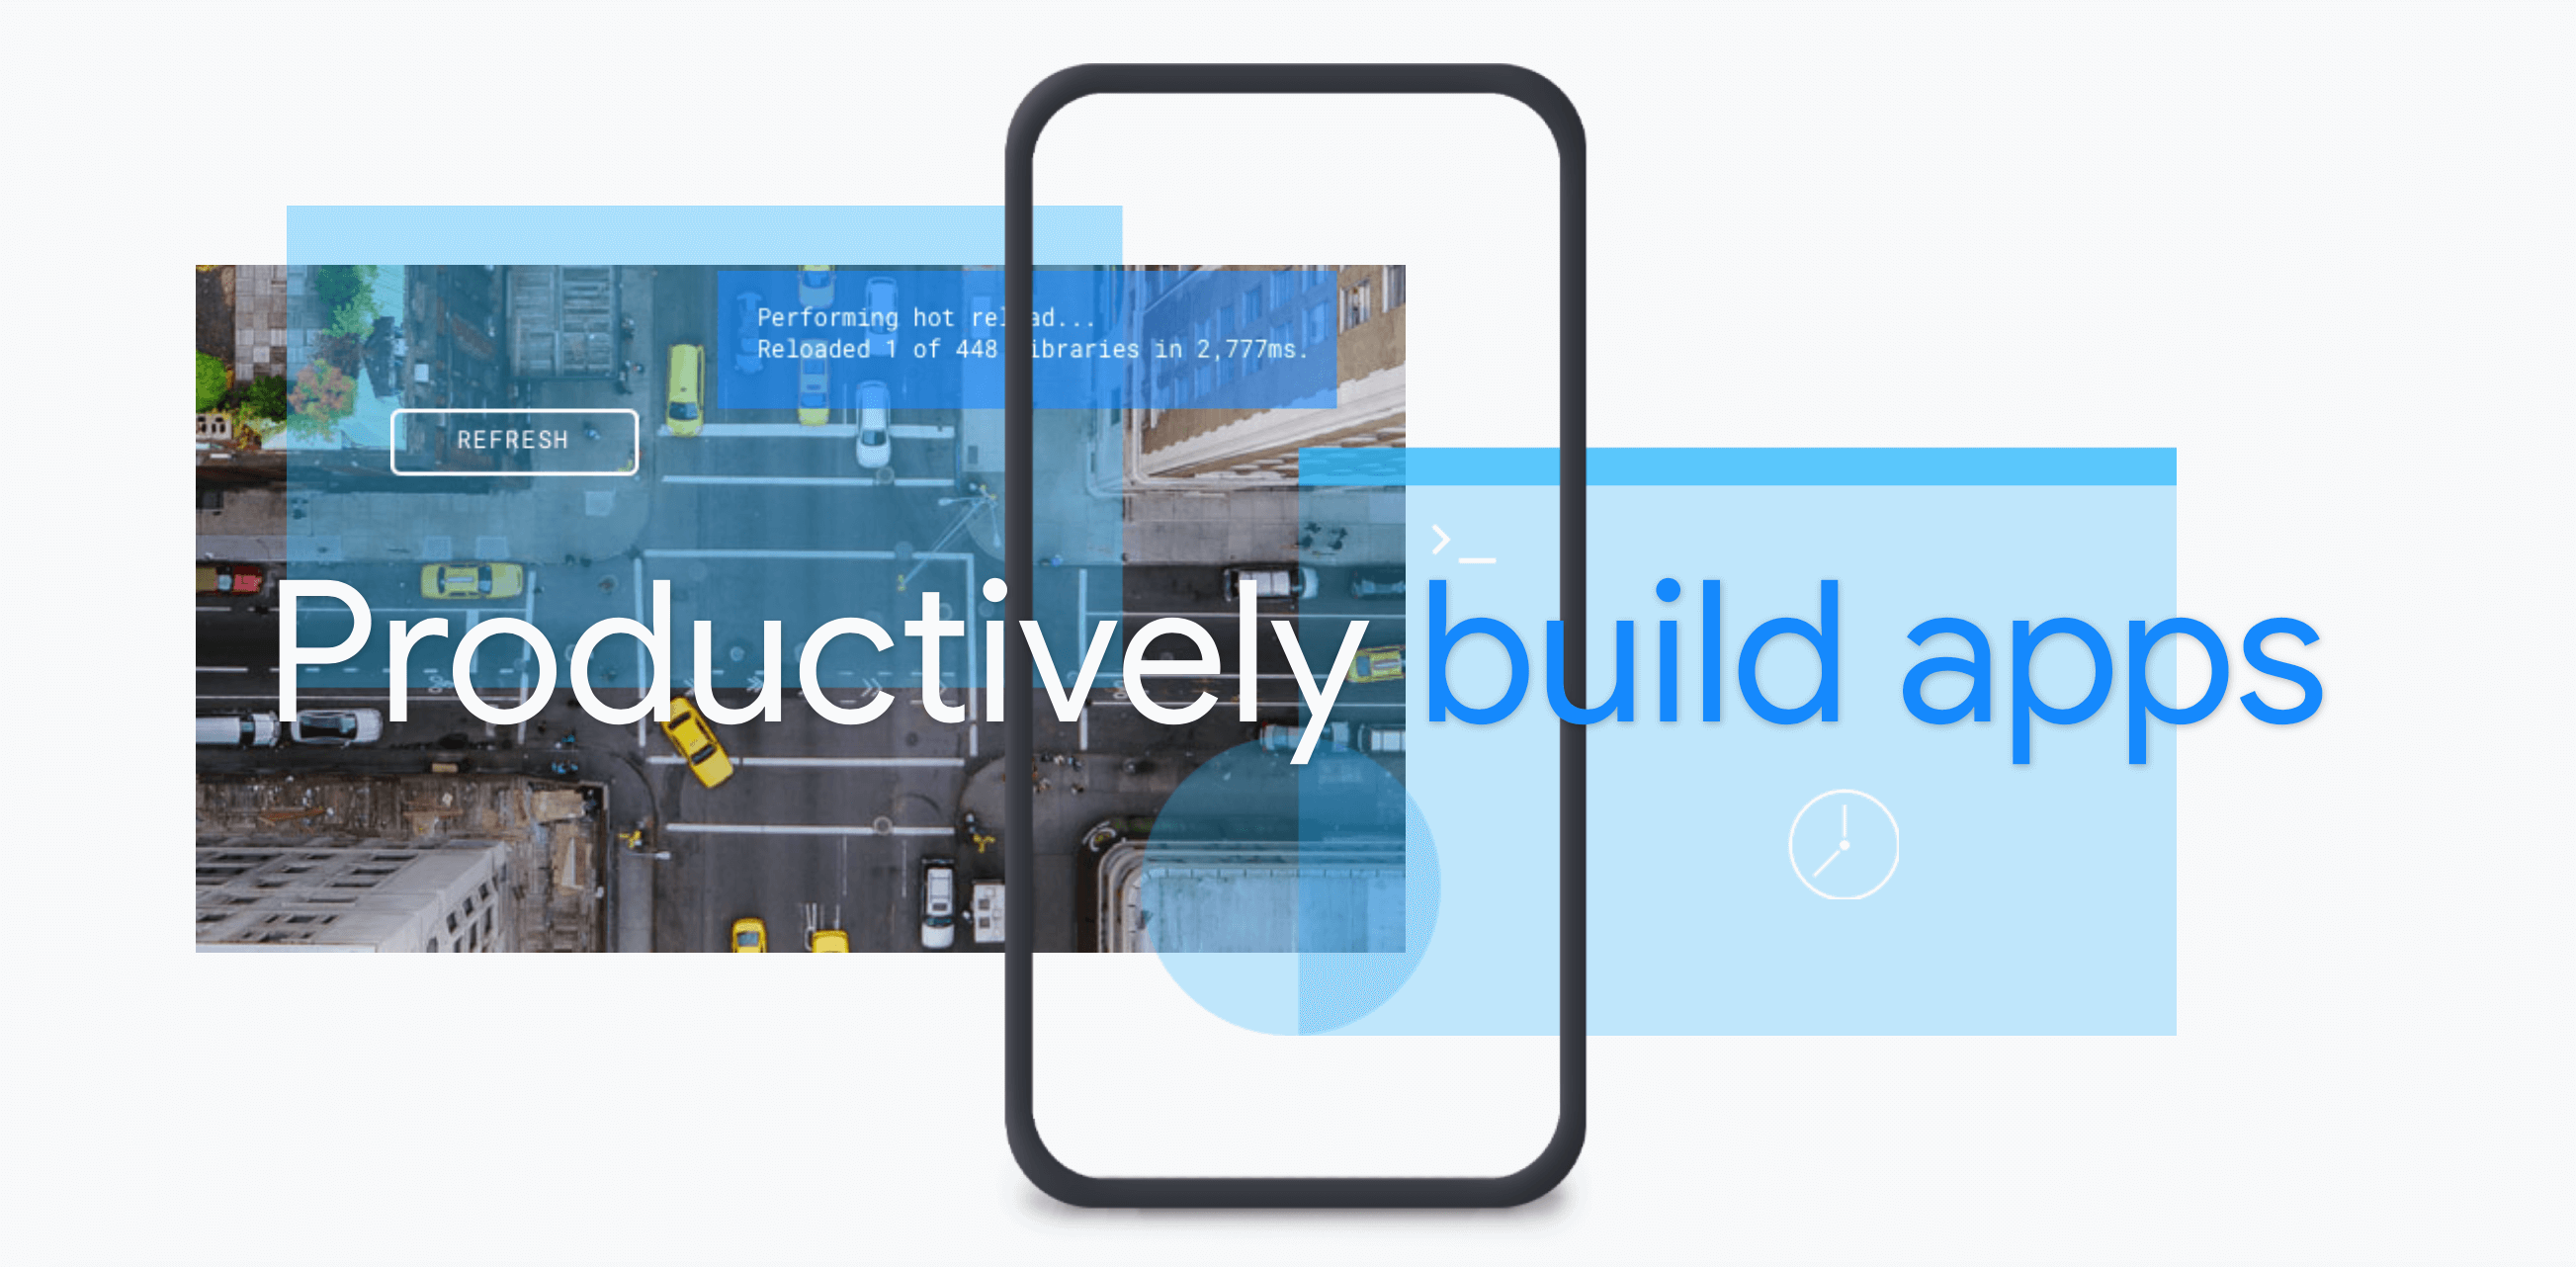 With Flutter you can Productively build apps